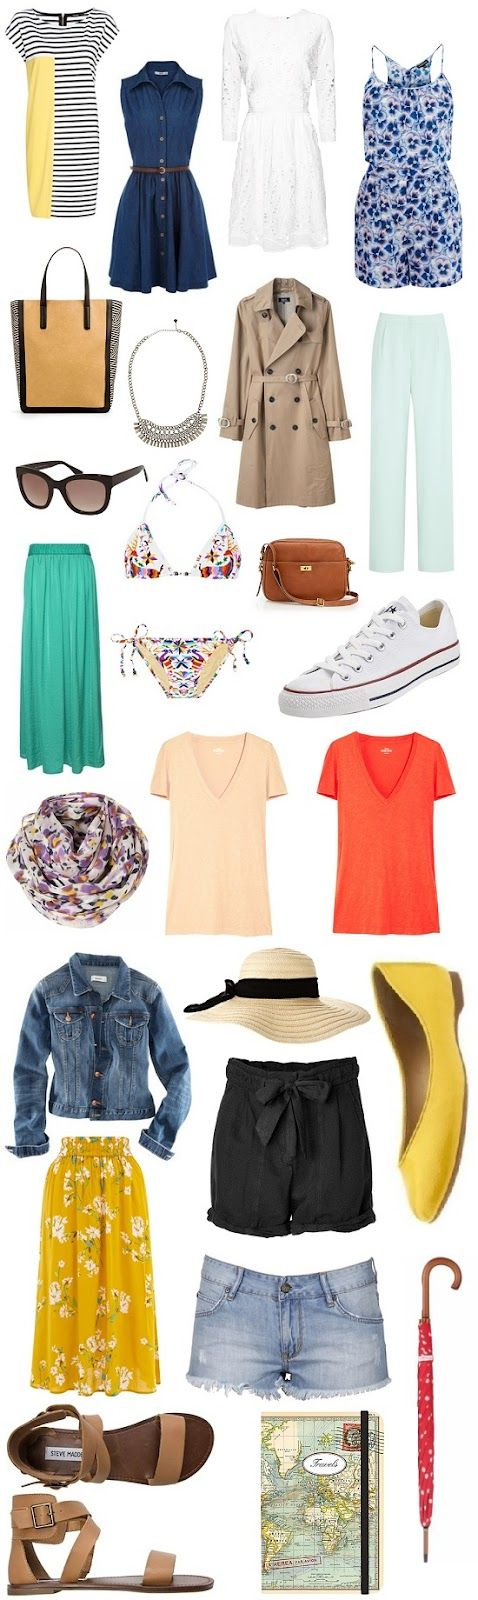 This practically sums up everything about my summer wardrobe, and these are perfect for traveling